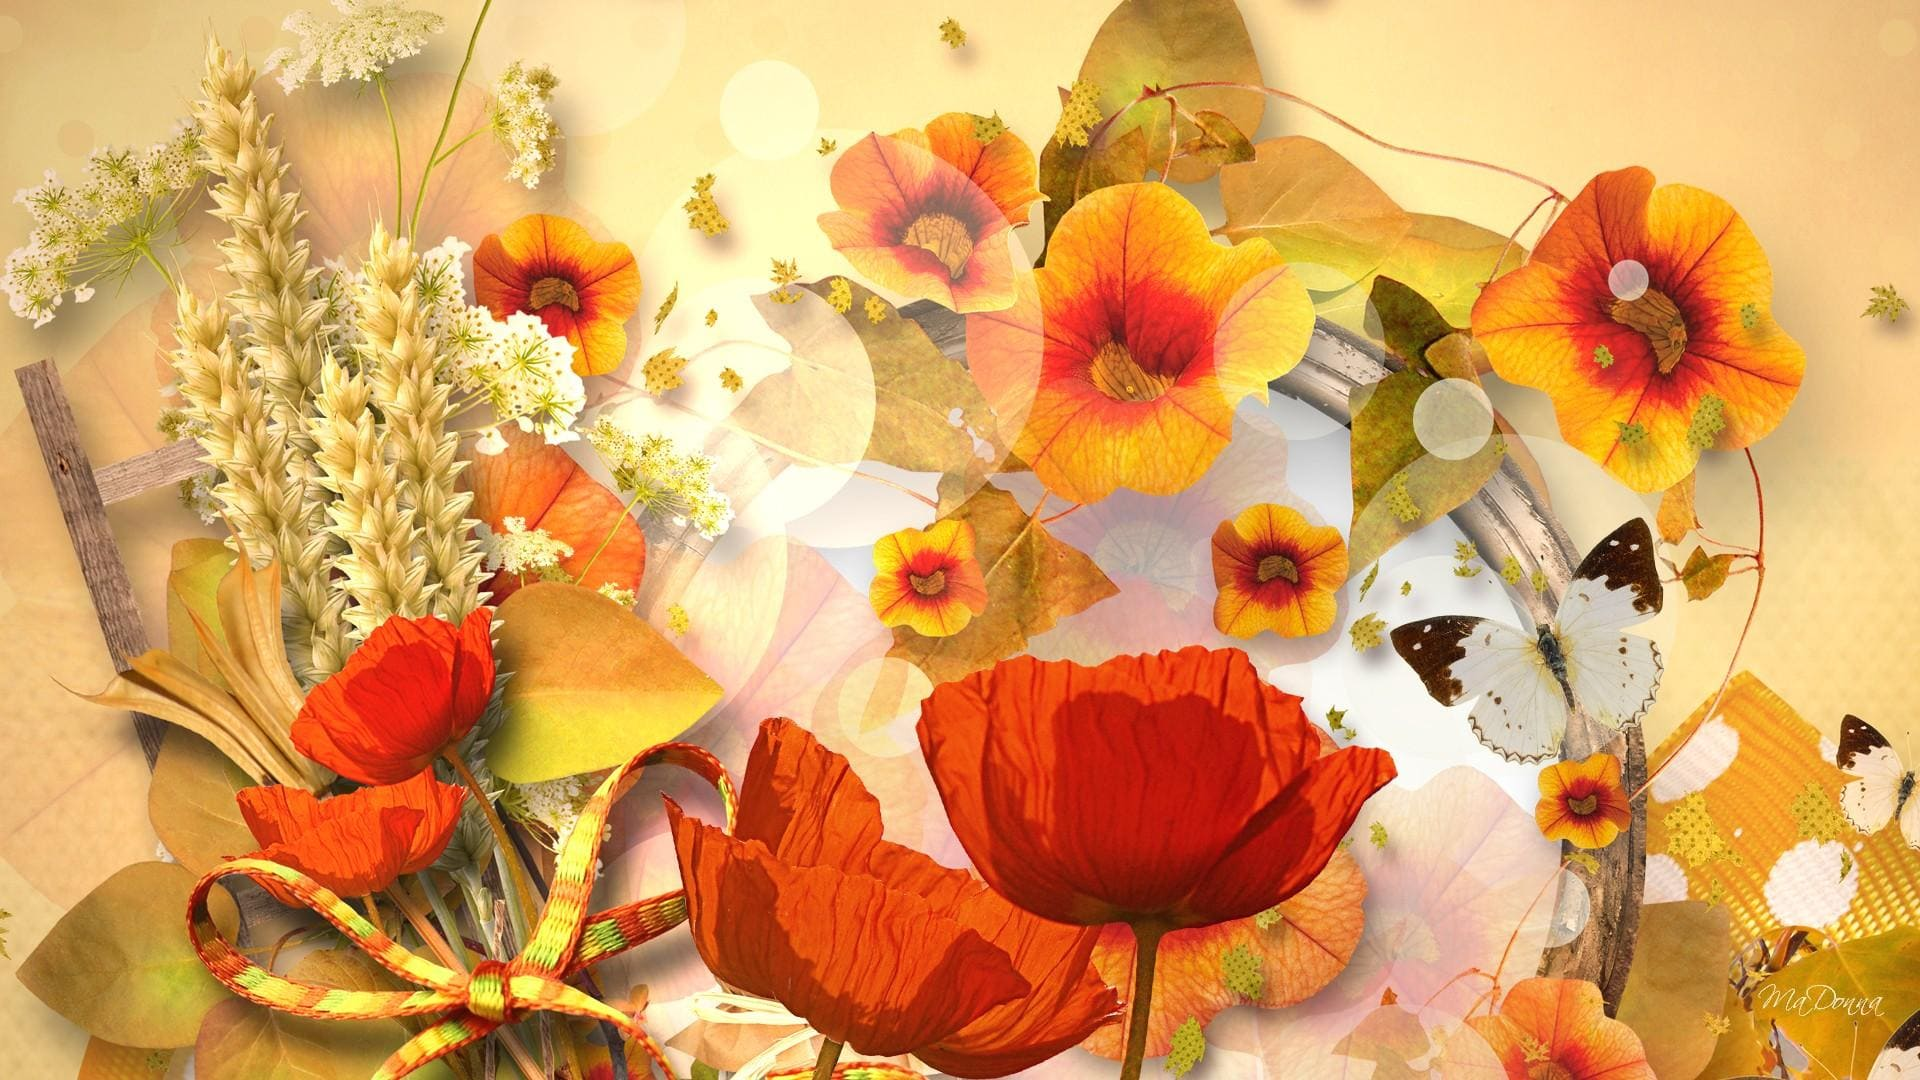 Fall floral backgrounds